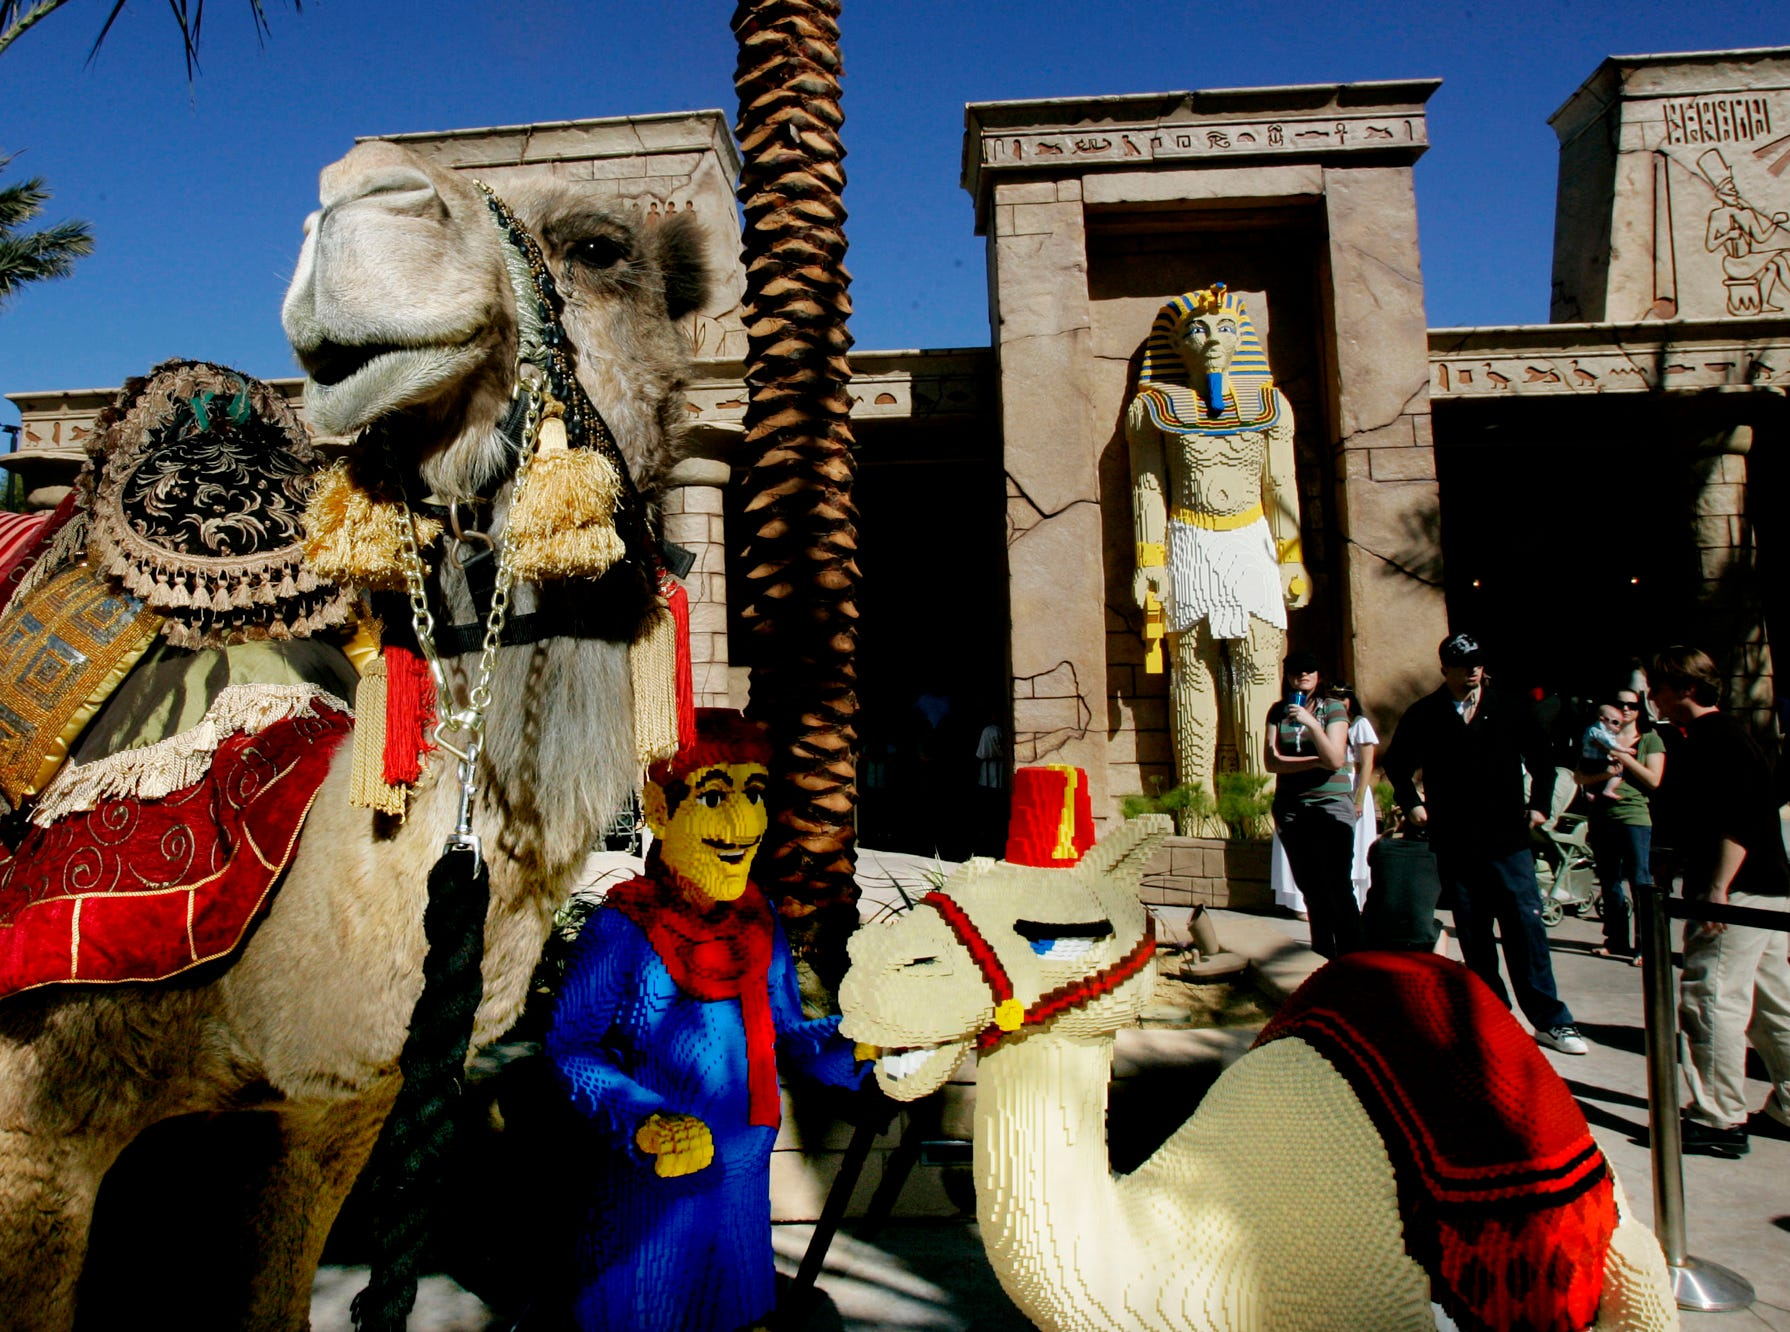 Egypt is one of the components of Legoland California's Land of Adventure.